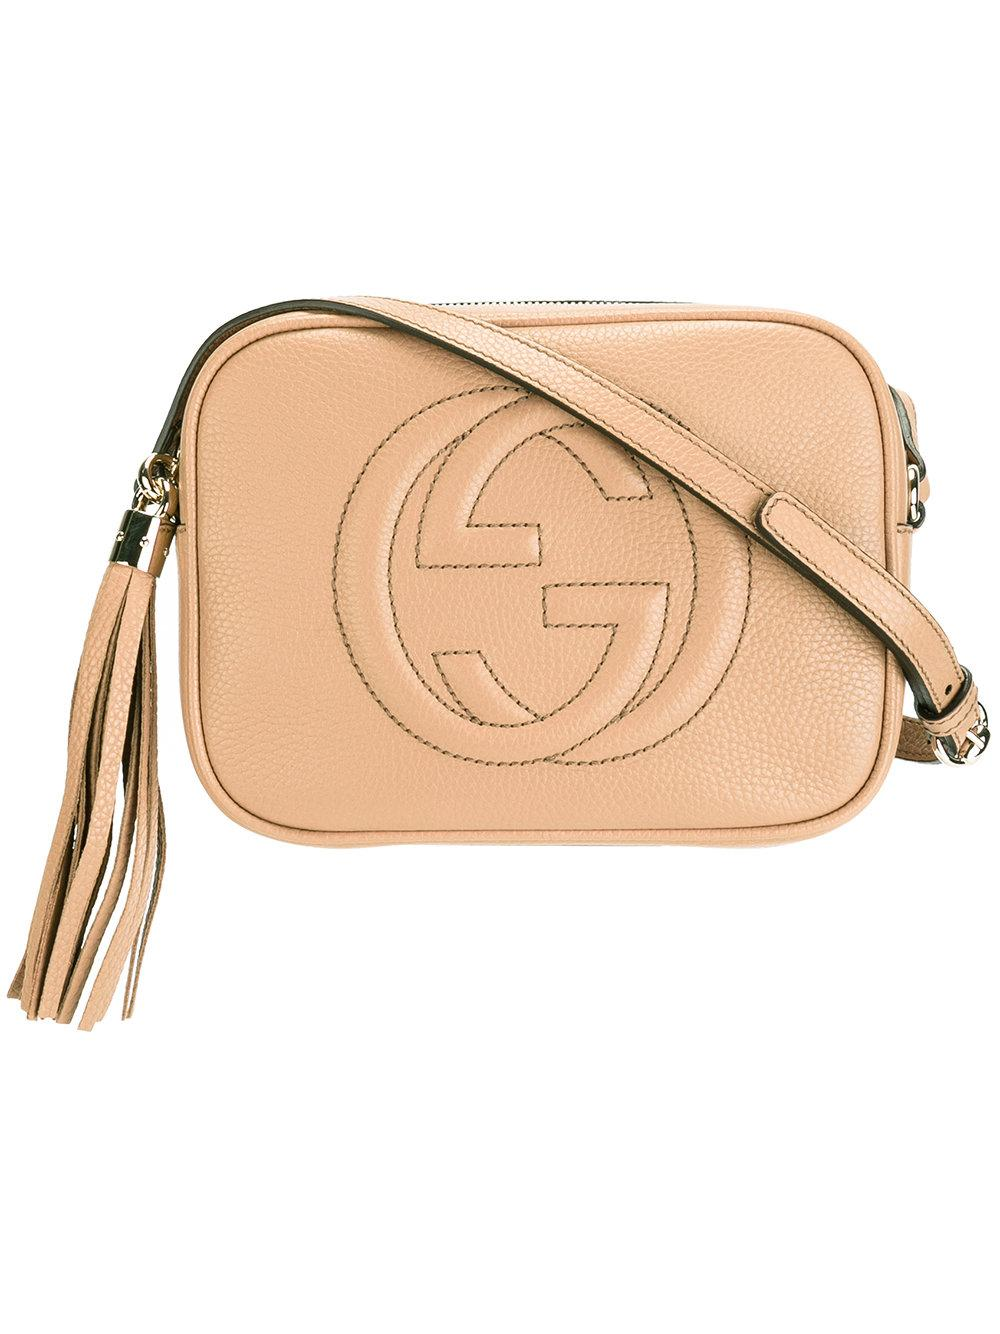 26b896e91a6 Gucci - Soho Leather Disco Bag - Women - Leather - One Size in ...